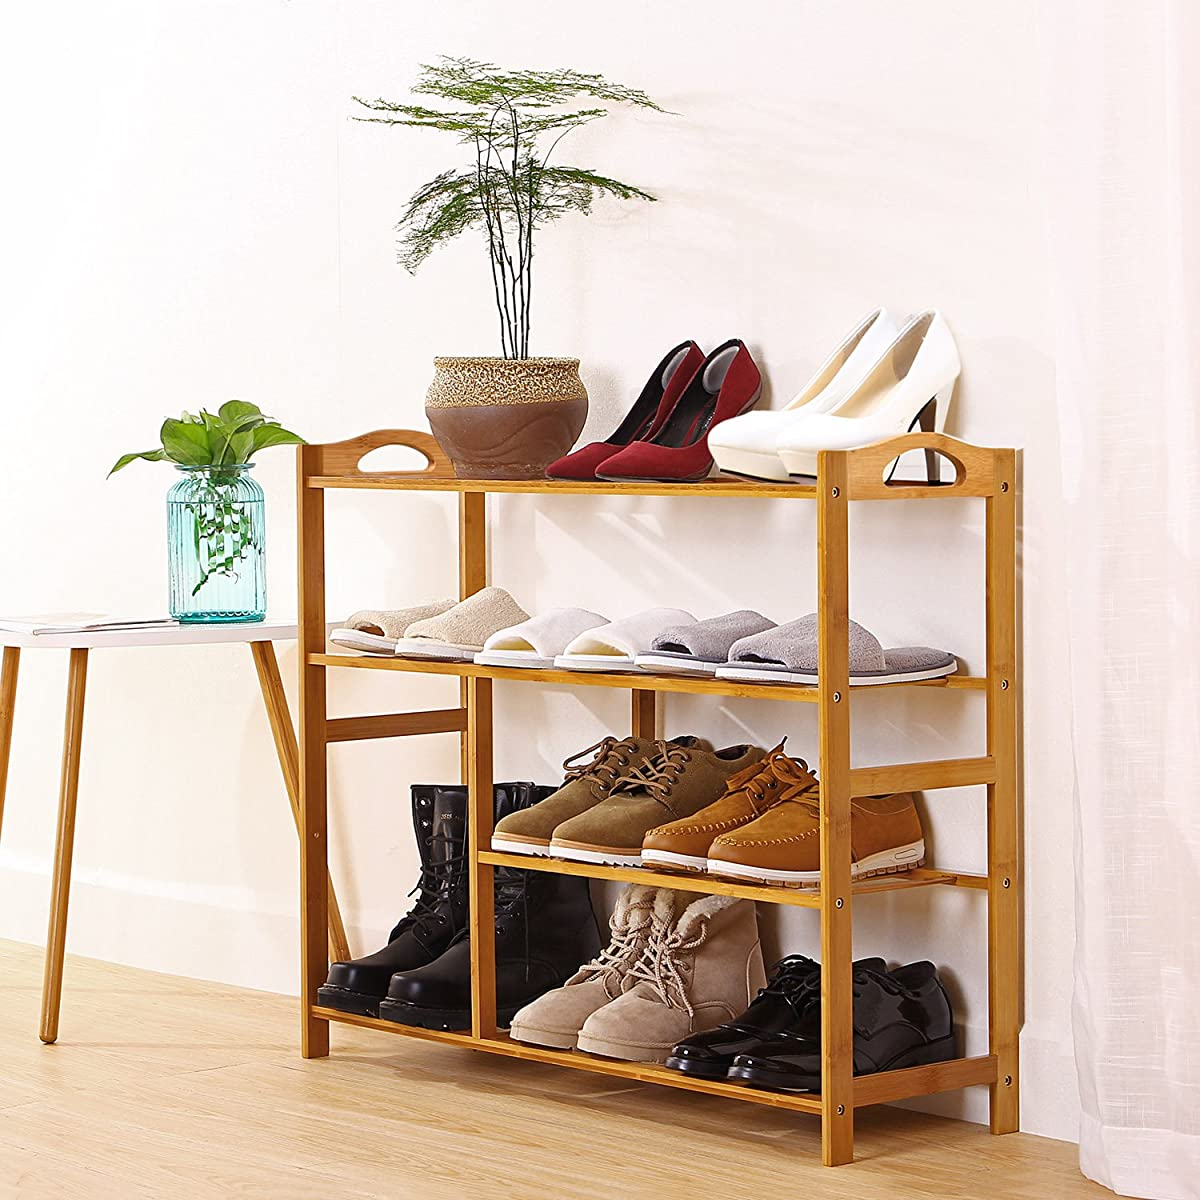 "Ollieroo Thickened Natural Bamboo Shoe Rack Shoe Shelf Storage Organizer for About 13 Pairs of Shoes Size 31.5""X10.3""X26"" (4 Tier)"